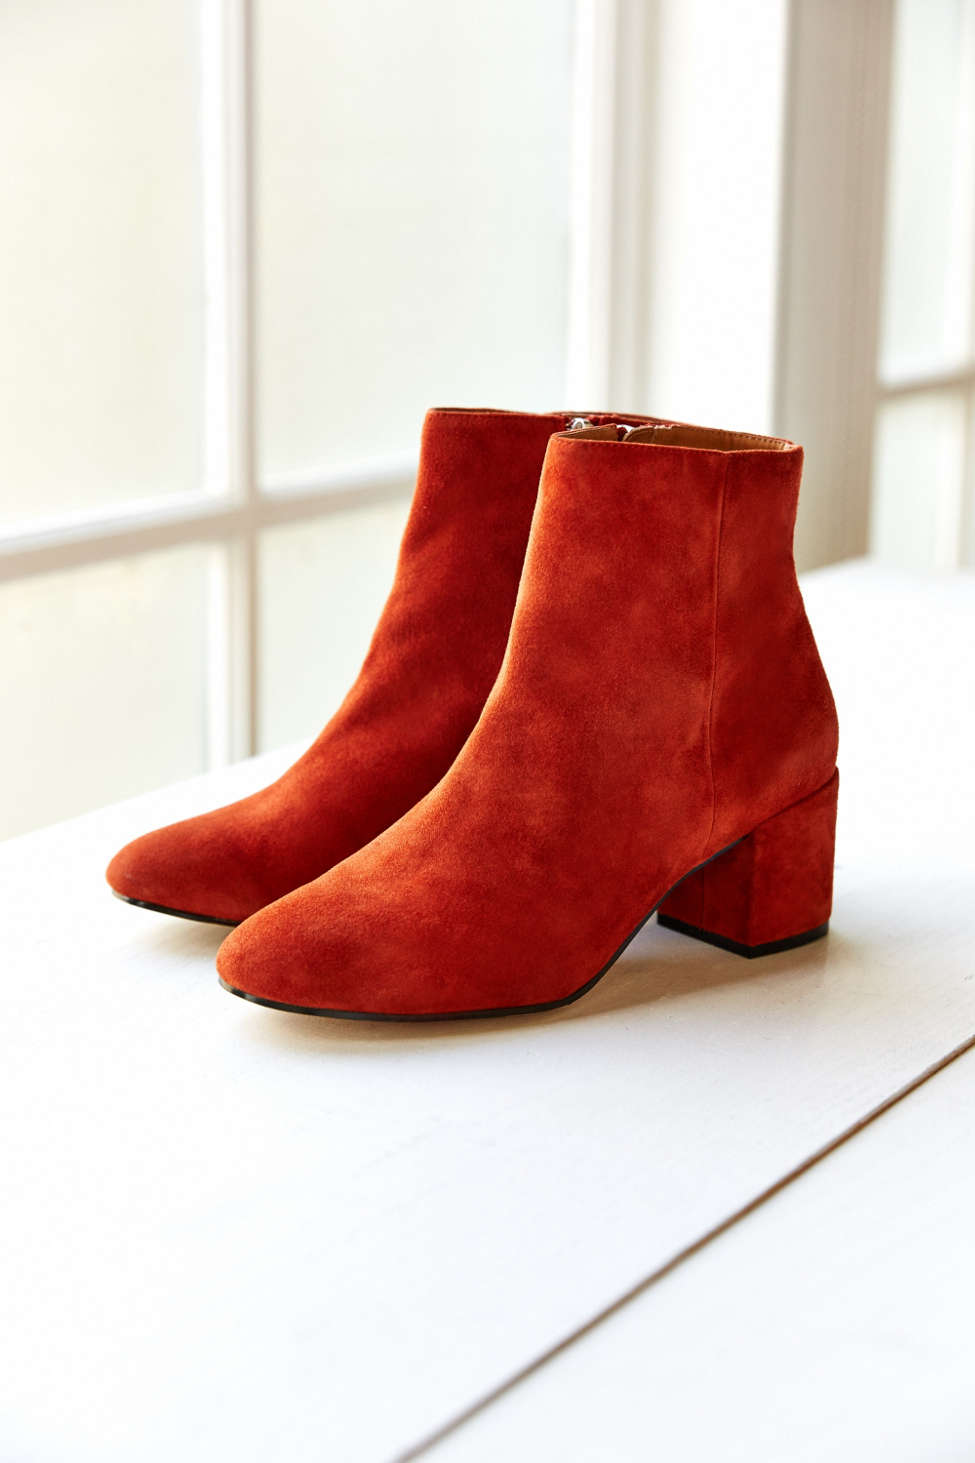 http://www.urbanoutfitters.com/urban/catalog/productdetail.jsp?id=36294098&category=W_SHOES_BOOTS&color=086